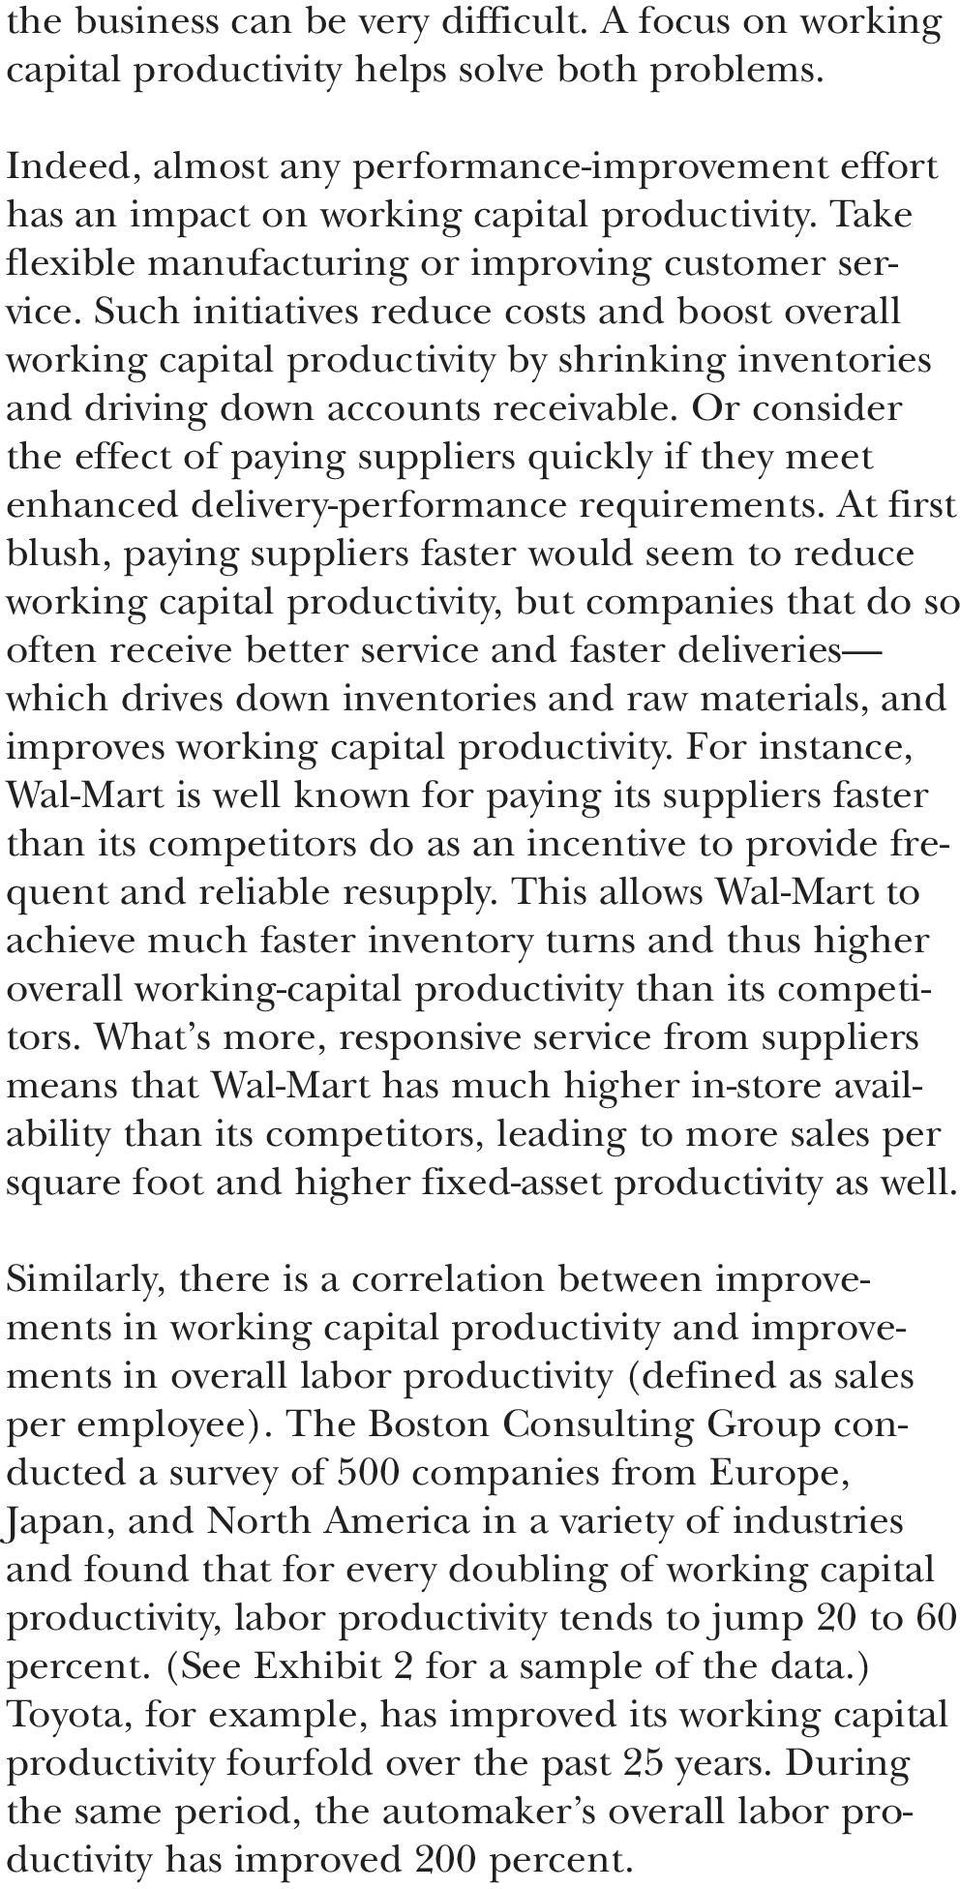 Or consider the effect of paying suppliers quickly if they meet enhanced delivery-performance requirements.